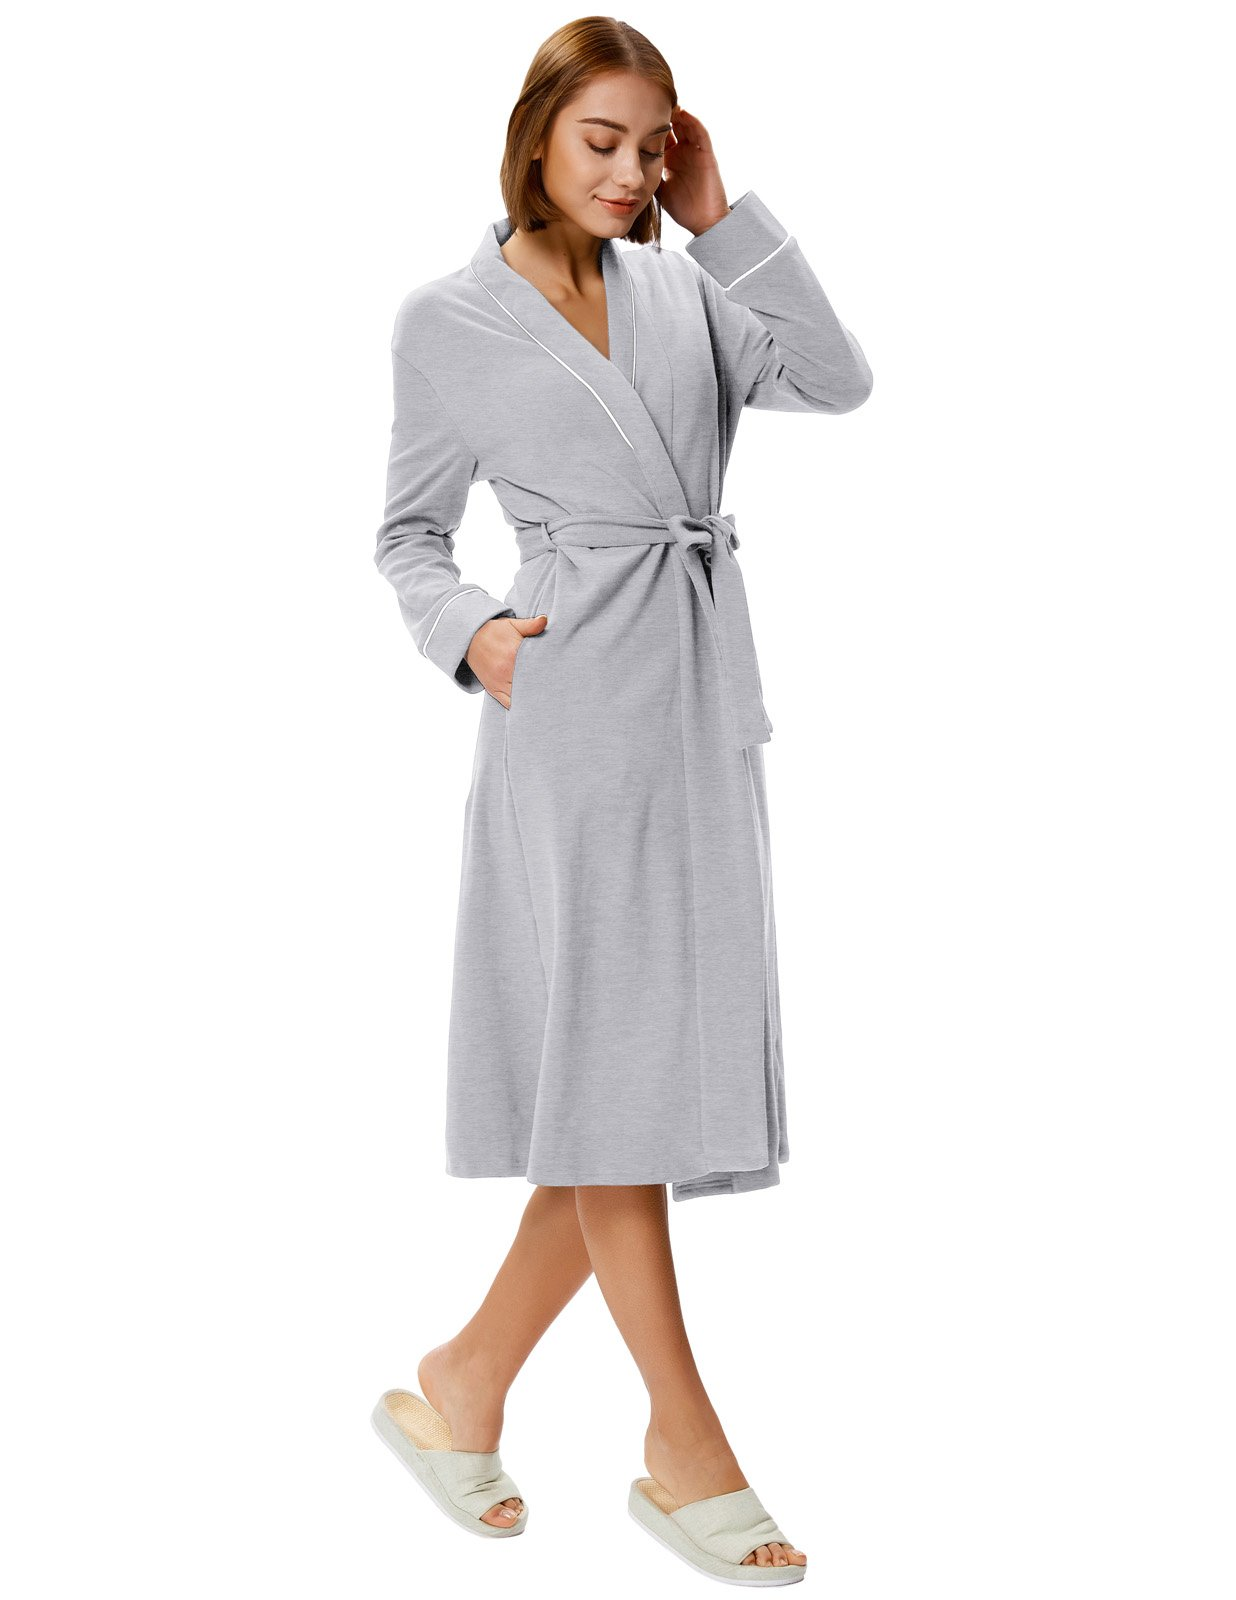 Zexxxy Warm Robes for Women Long Soft Cotton Blend Wrap Robe Terry Cloth Light Grey M